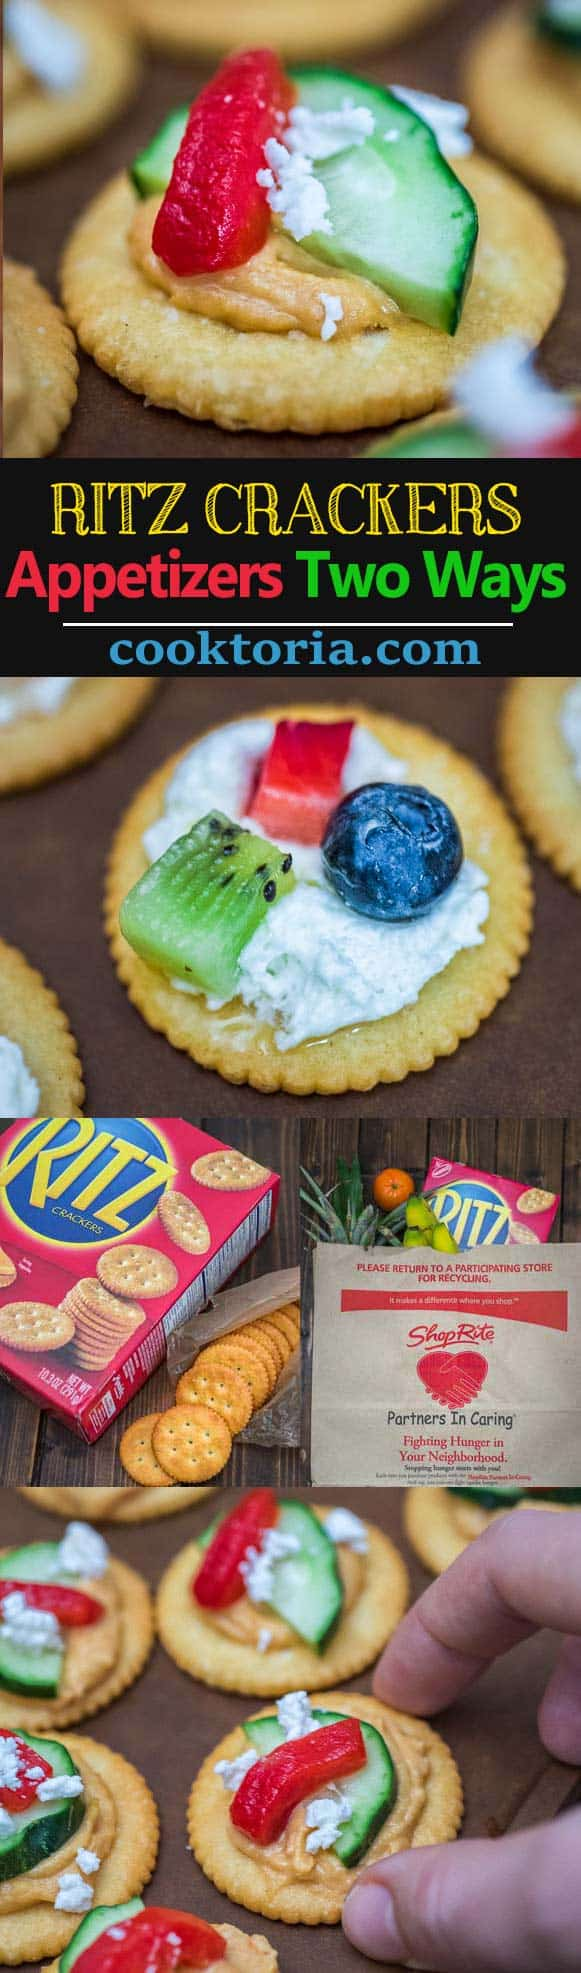 These quick and tasty RITZ Cracker Appetizers Two Ways are sure to be a crowd pleaser at your next dinner or friend gathering! These two sweet & savory recipes are packed with flavor and crunchiness. Plus, I'll share a cute plating hack with you!  ❤ COOKTORIA.COM